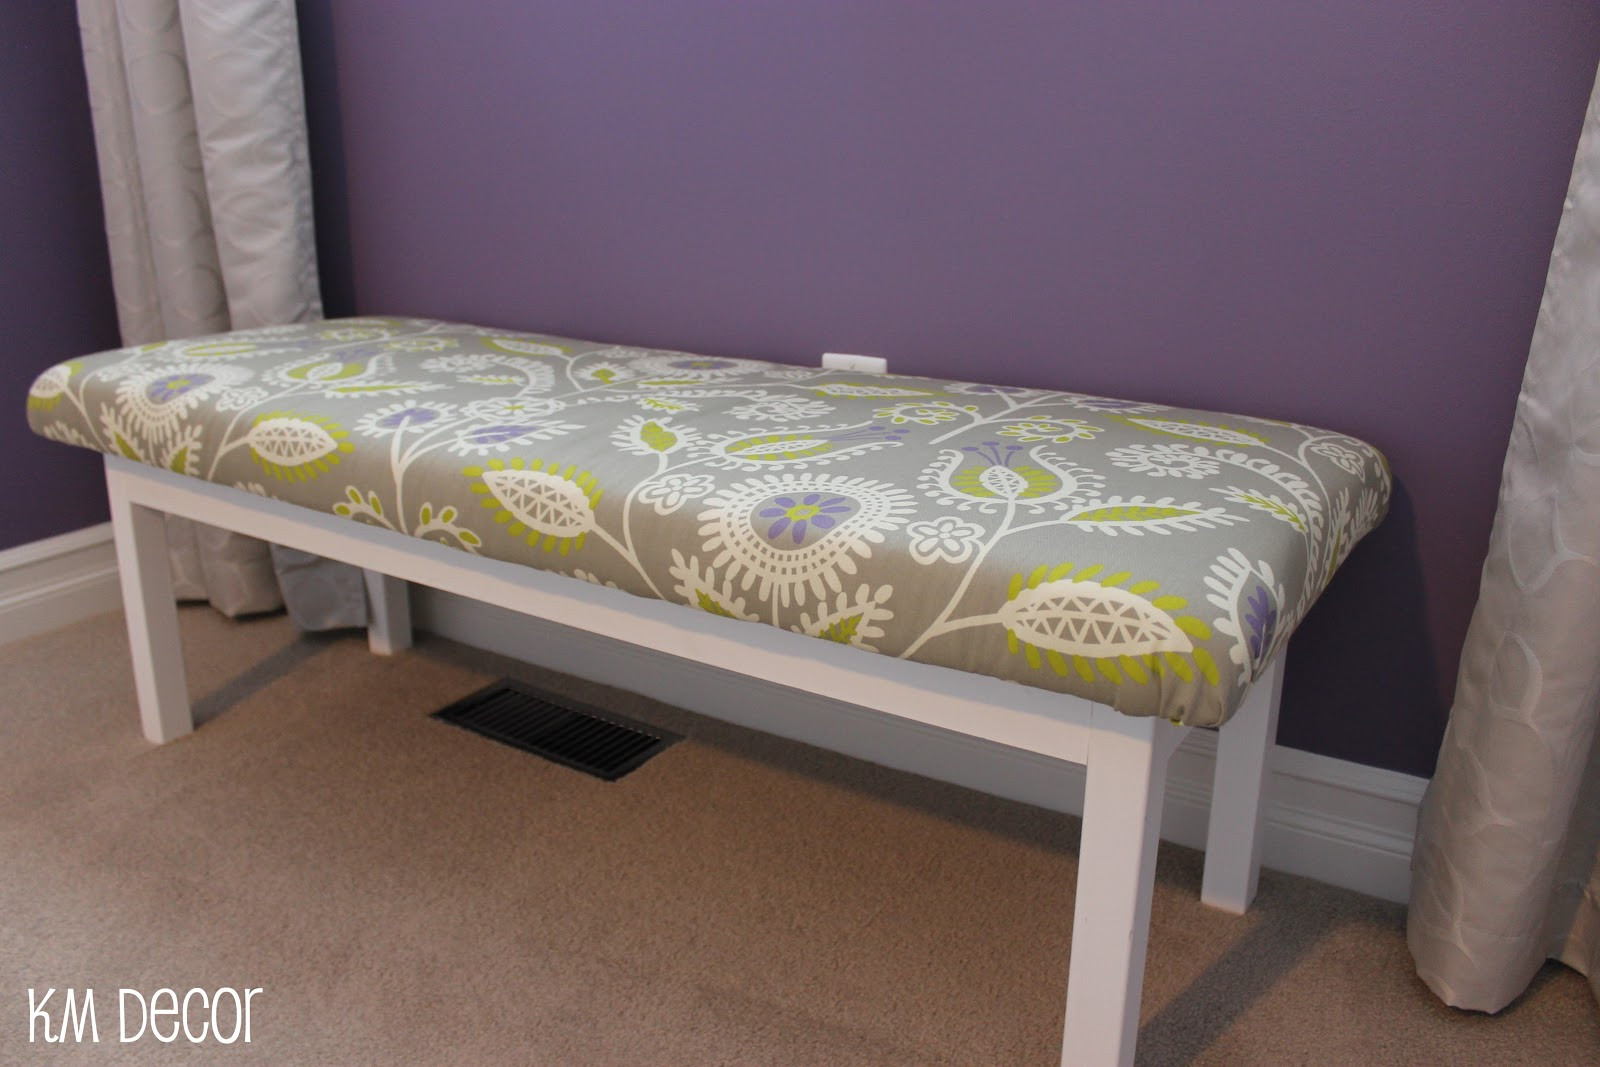 Best ideas about DIY Bench Seating . Save or Pin Bench Seat Diy PDF Woodworking Now.